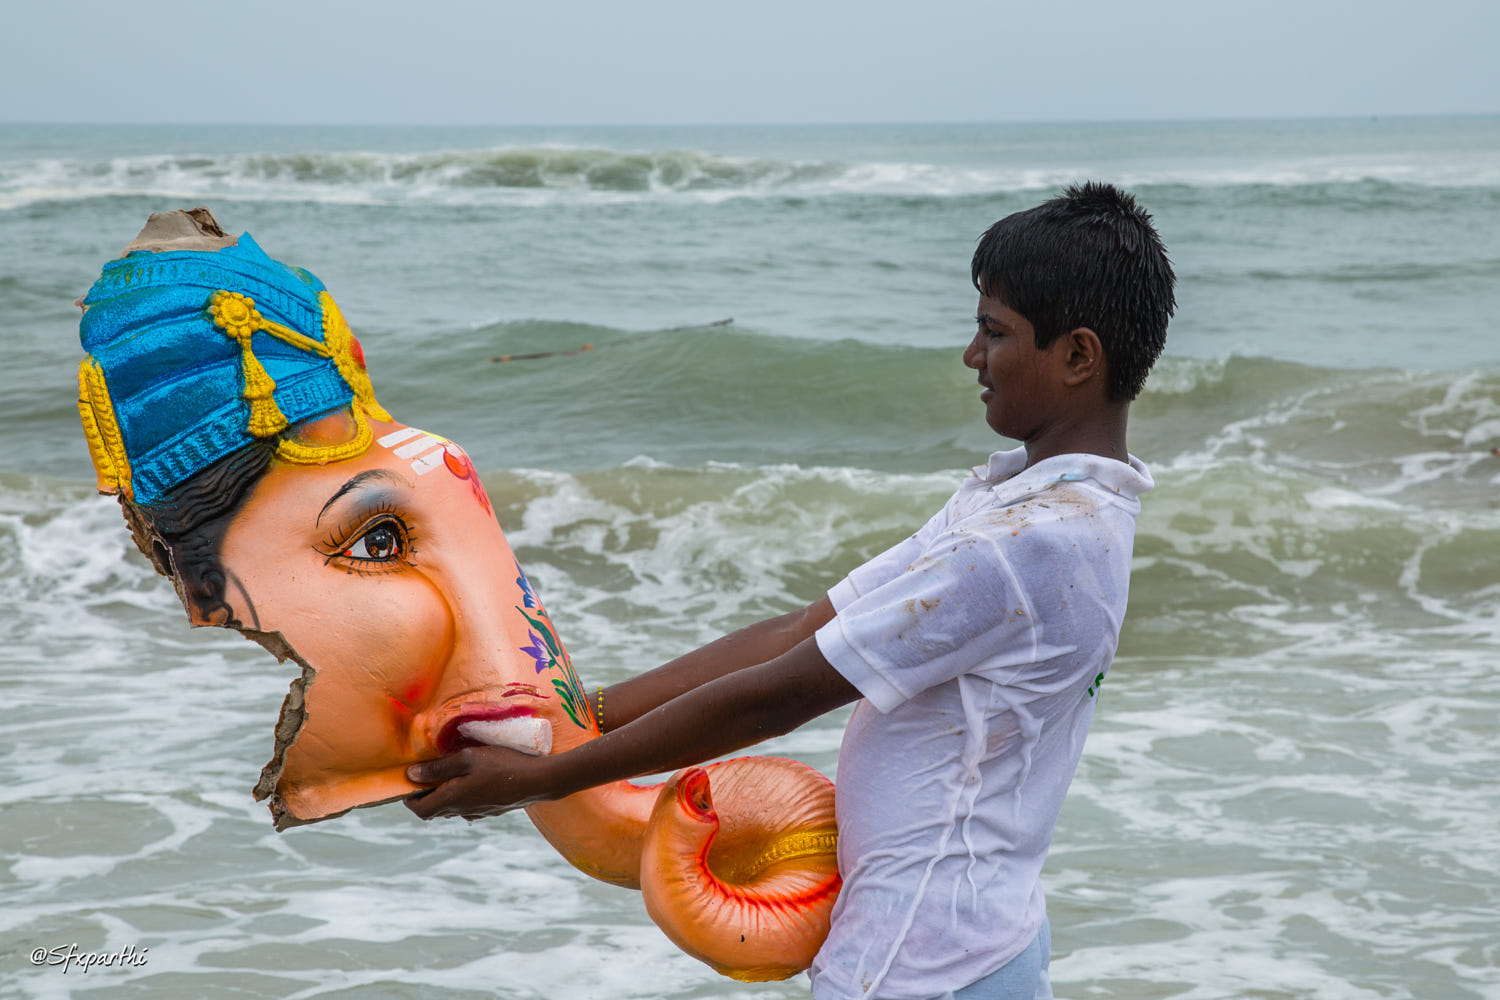 lifestyle photography ganesha kid by sfx parthi